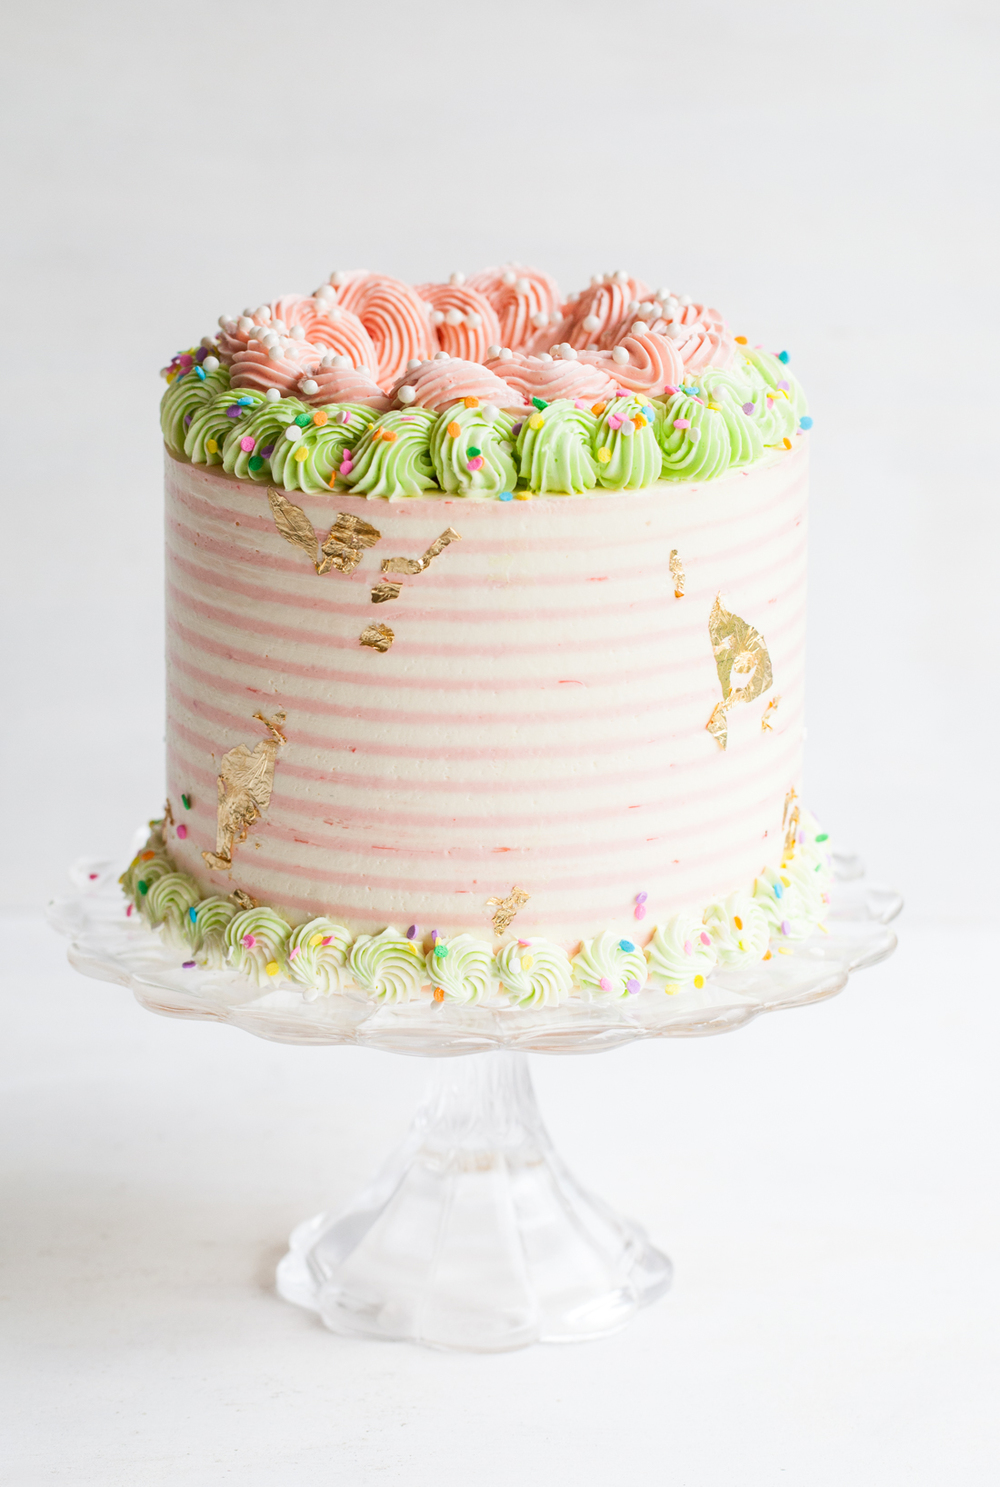 Rhubarb Crisp Unicorn Cake with striped buttercream, gold leaf and sprinkles.